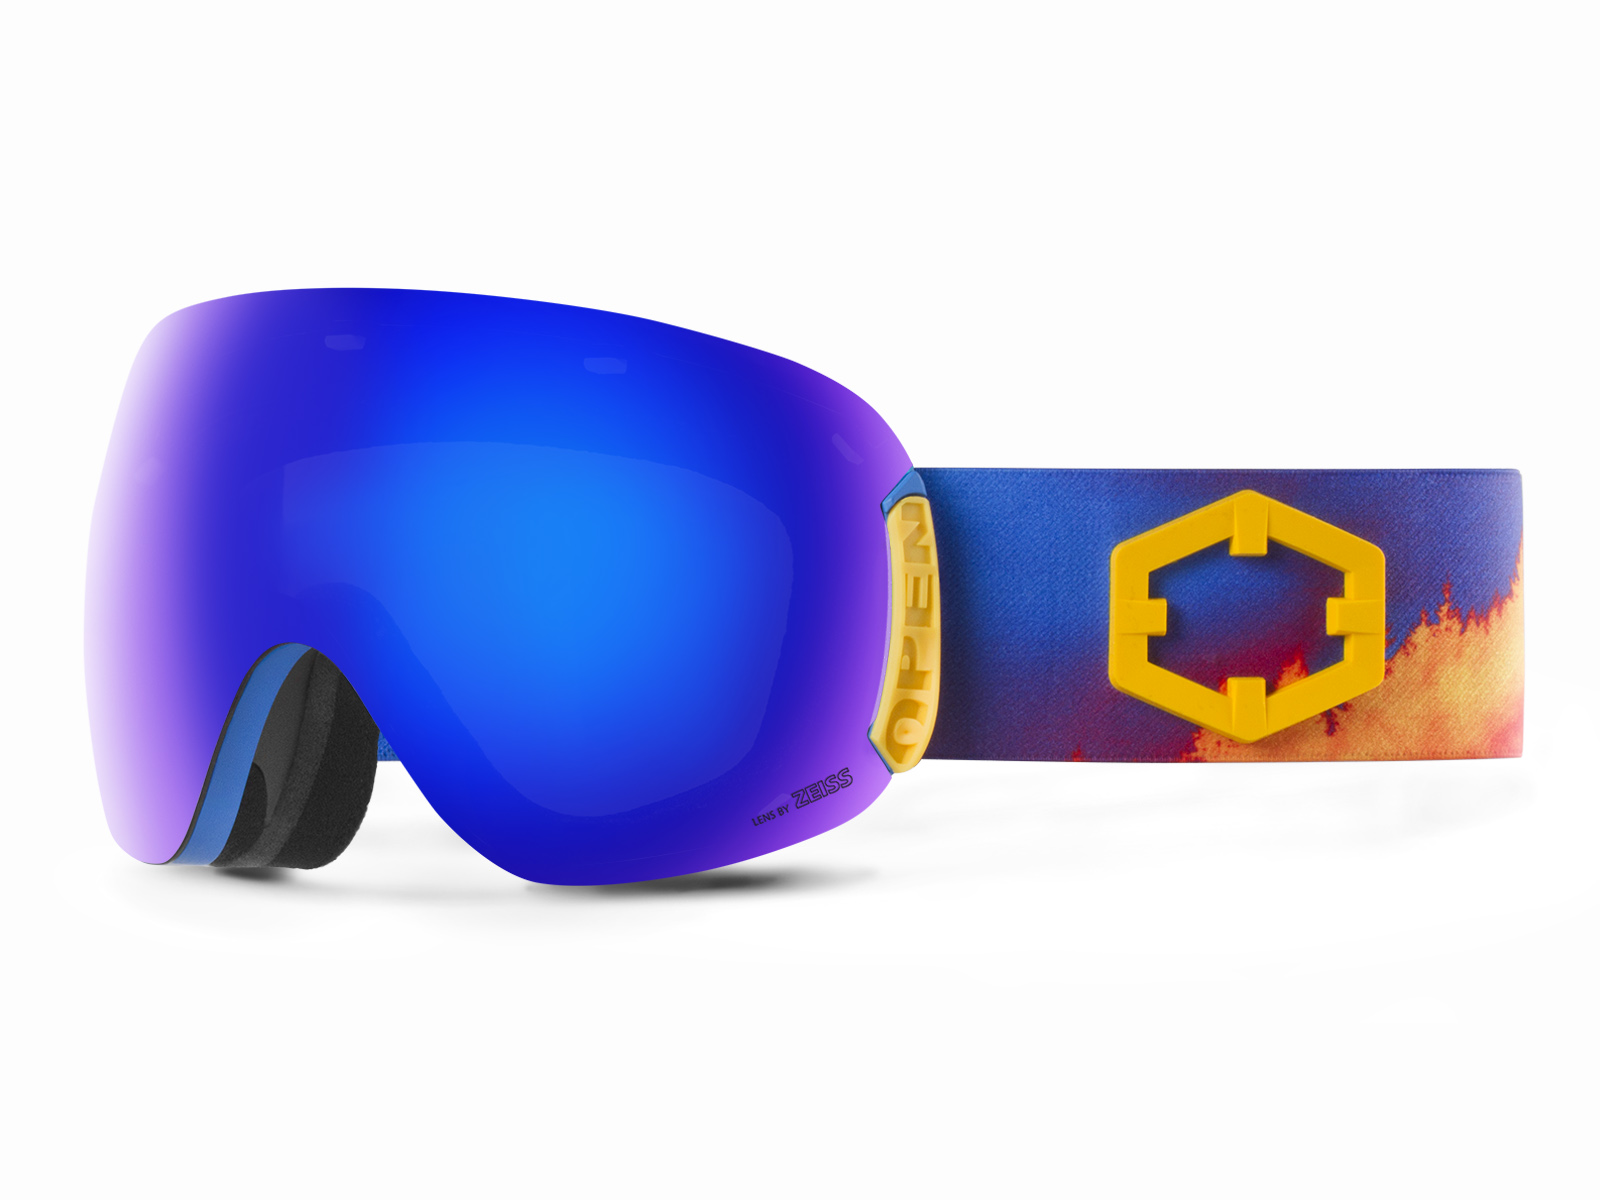 OPEN WILDFIRE BLUE MCI GOGGLE